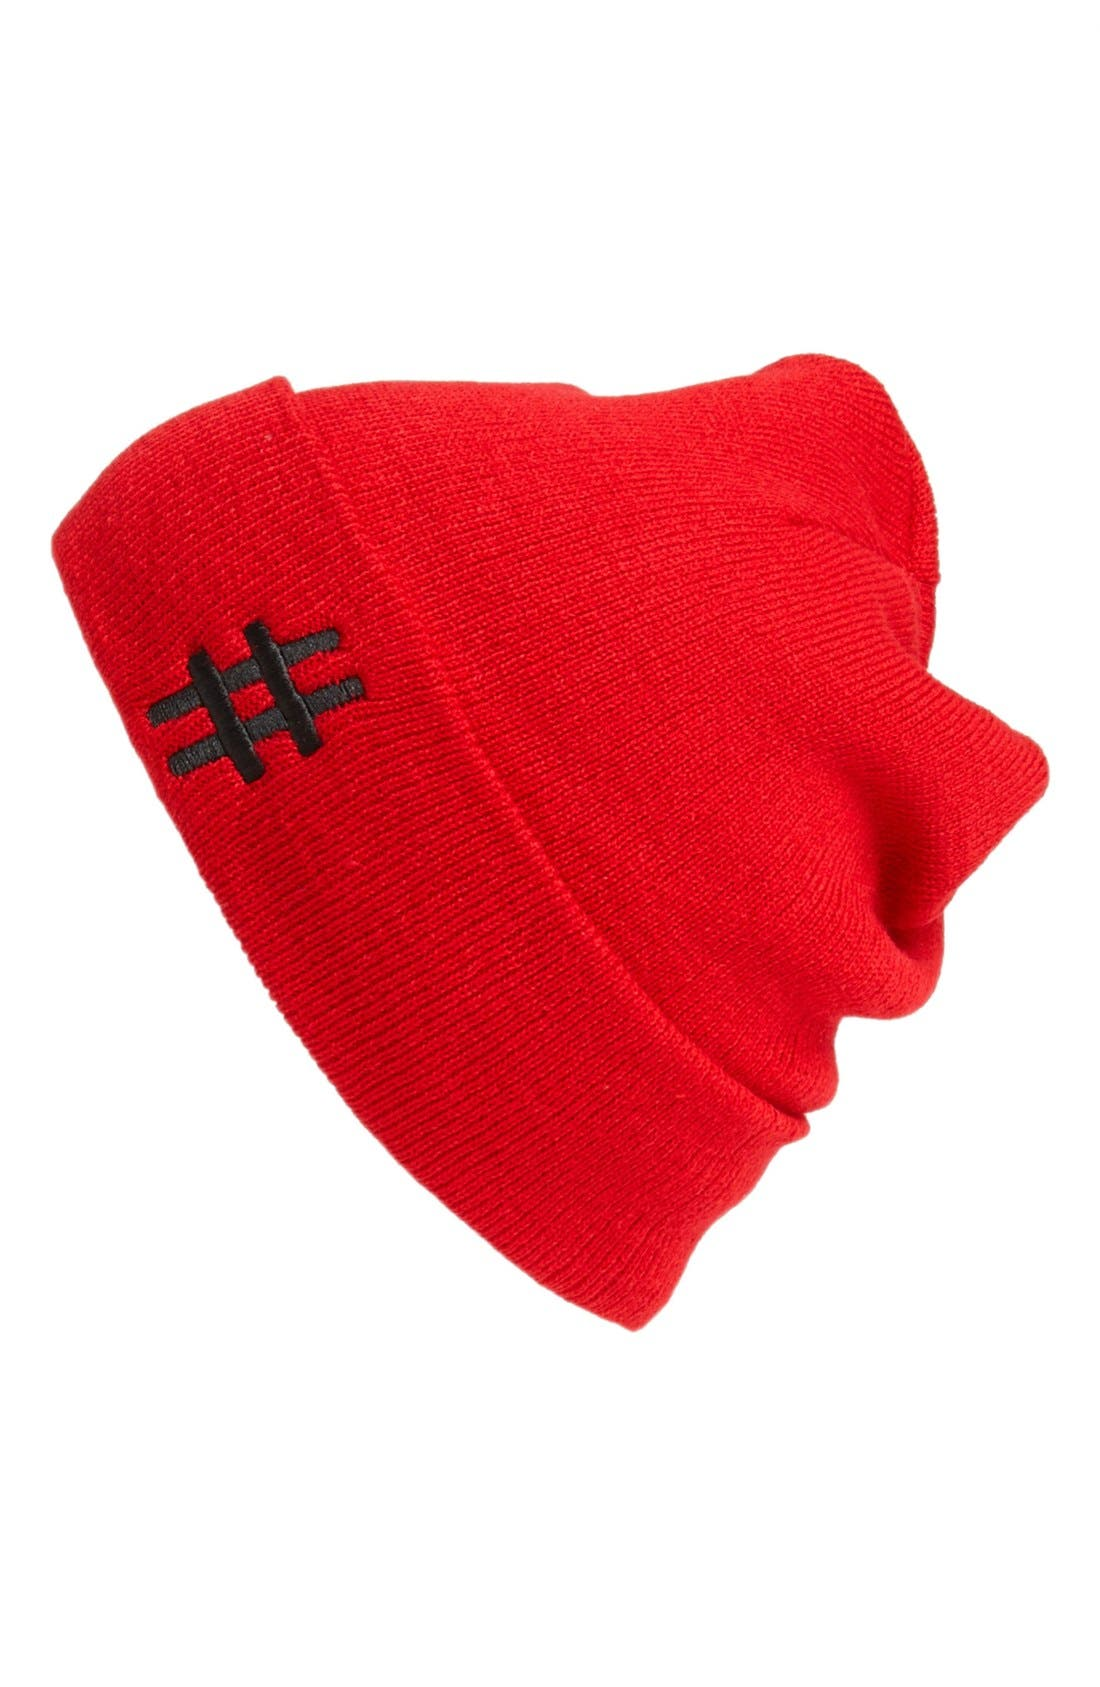 Alternate Image 1 Selected - In Record Time 'Hashtag' Beanie